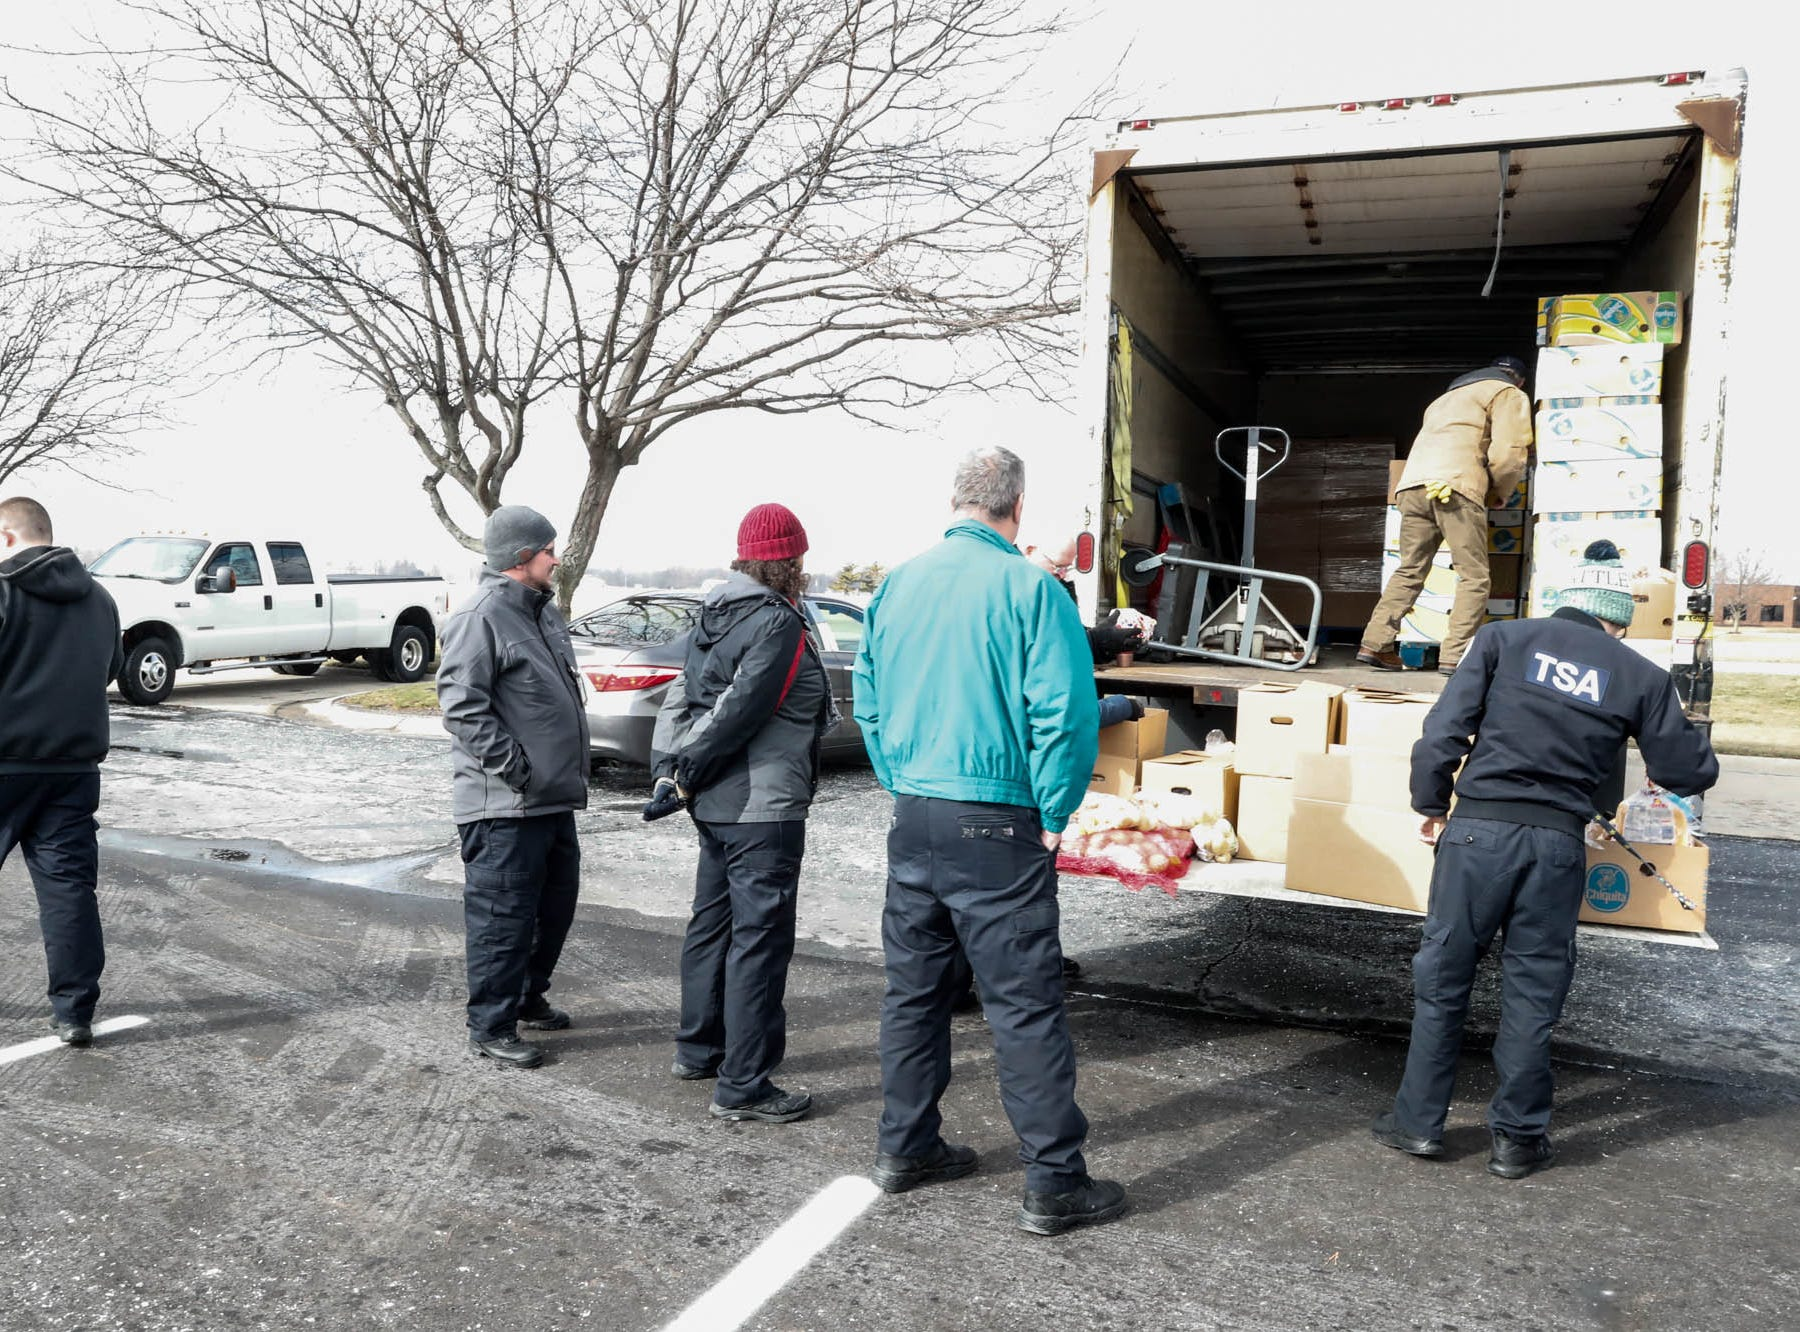 Community volunteers from Old Bethel UMC hand out Gleaners Food Bank boxes to TSA  employees affected by the government shutdown at the Transportation Security Administration offices, 8303 W Southern Ave., Indianapolis, on Thursday, Jan. 24, 2019.